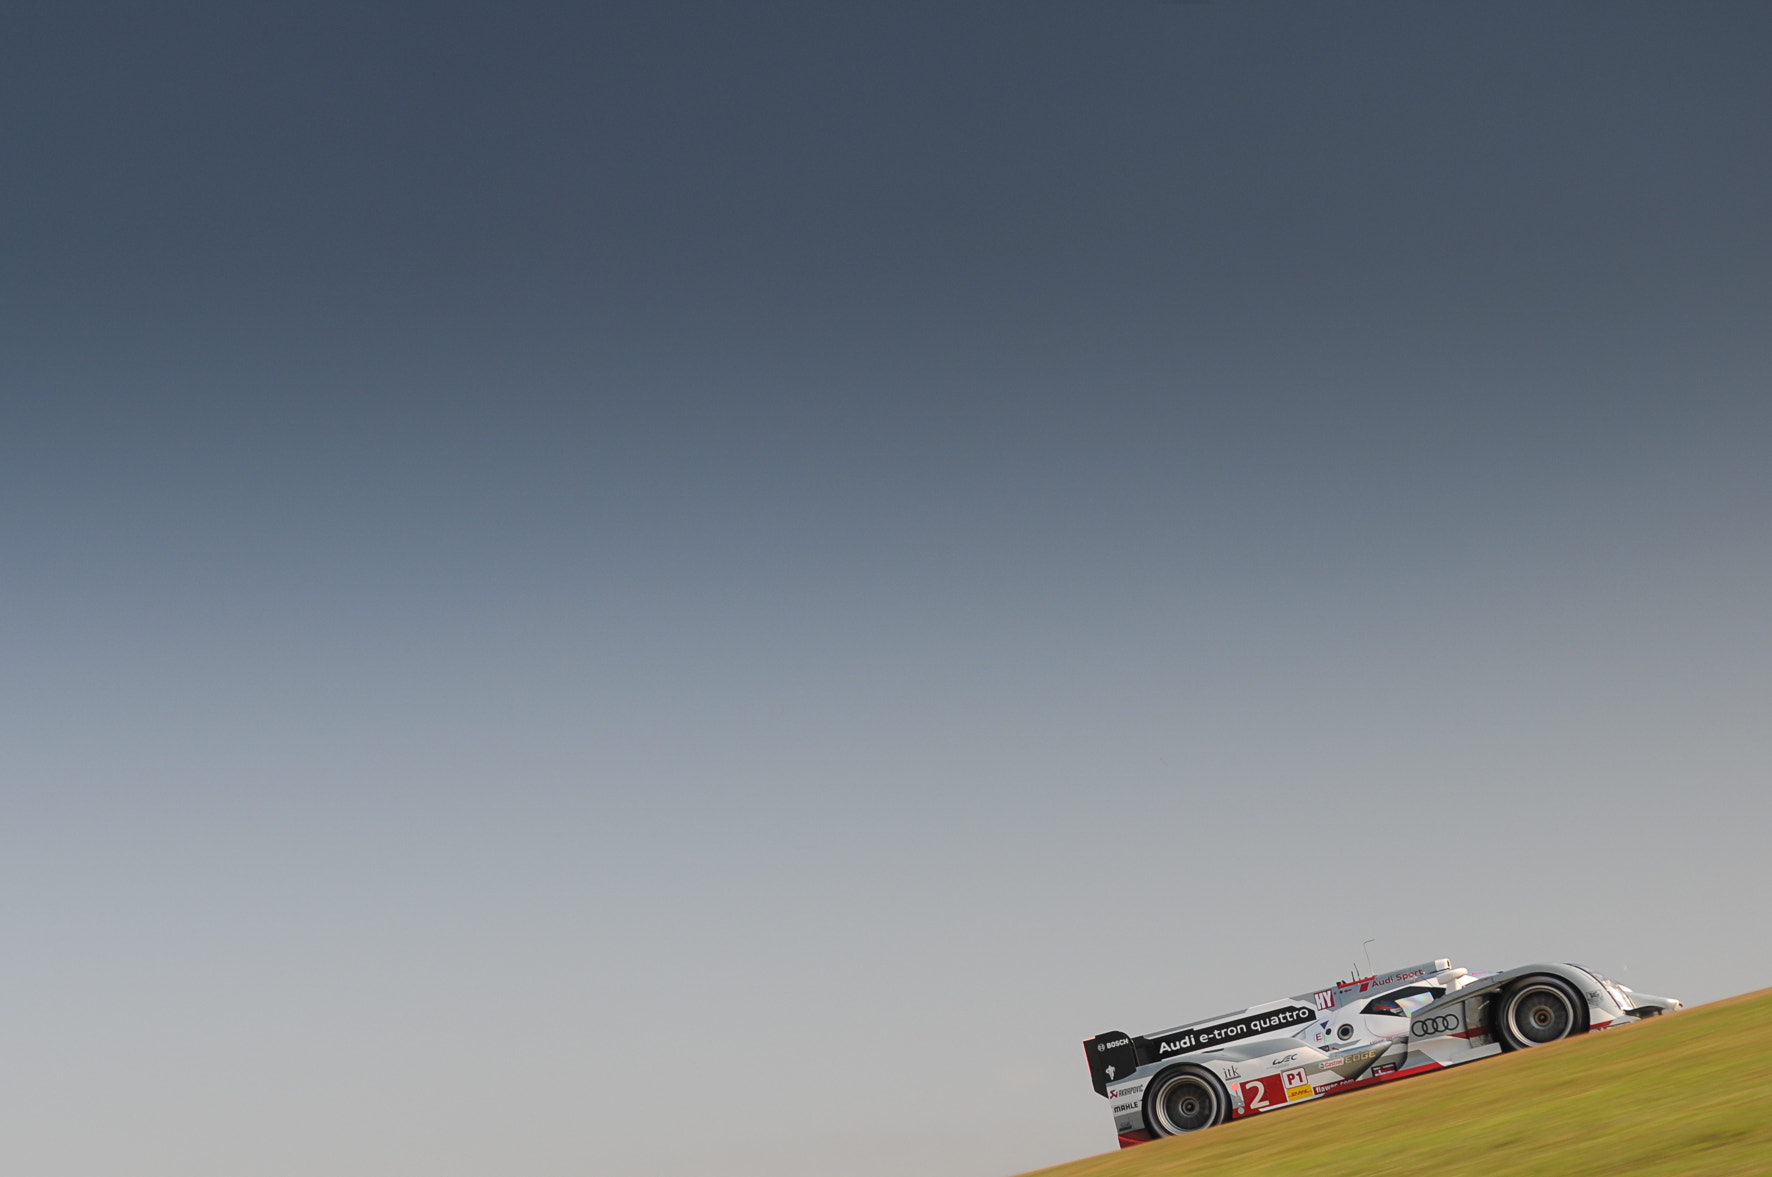 Photograph Audi - FIA WEC by Fabio Davini on 500px